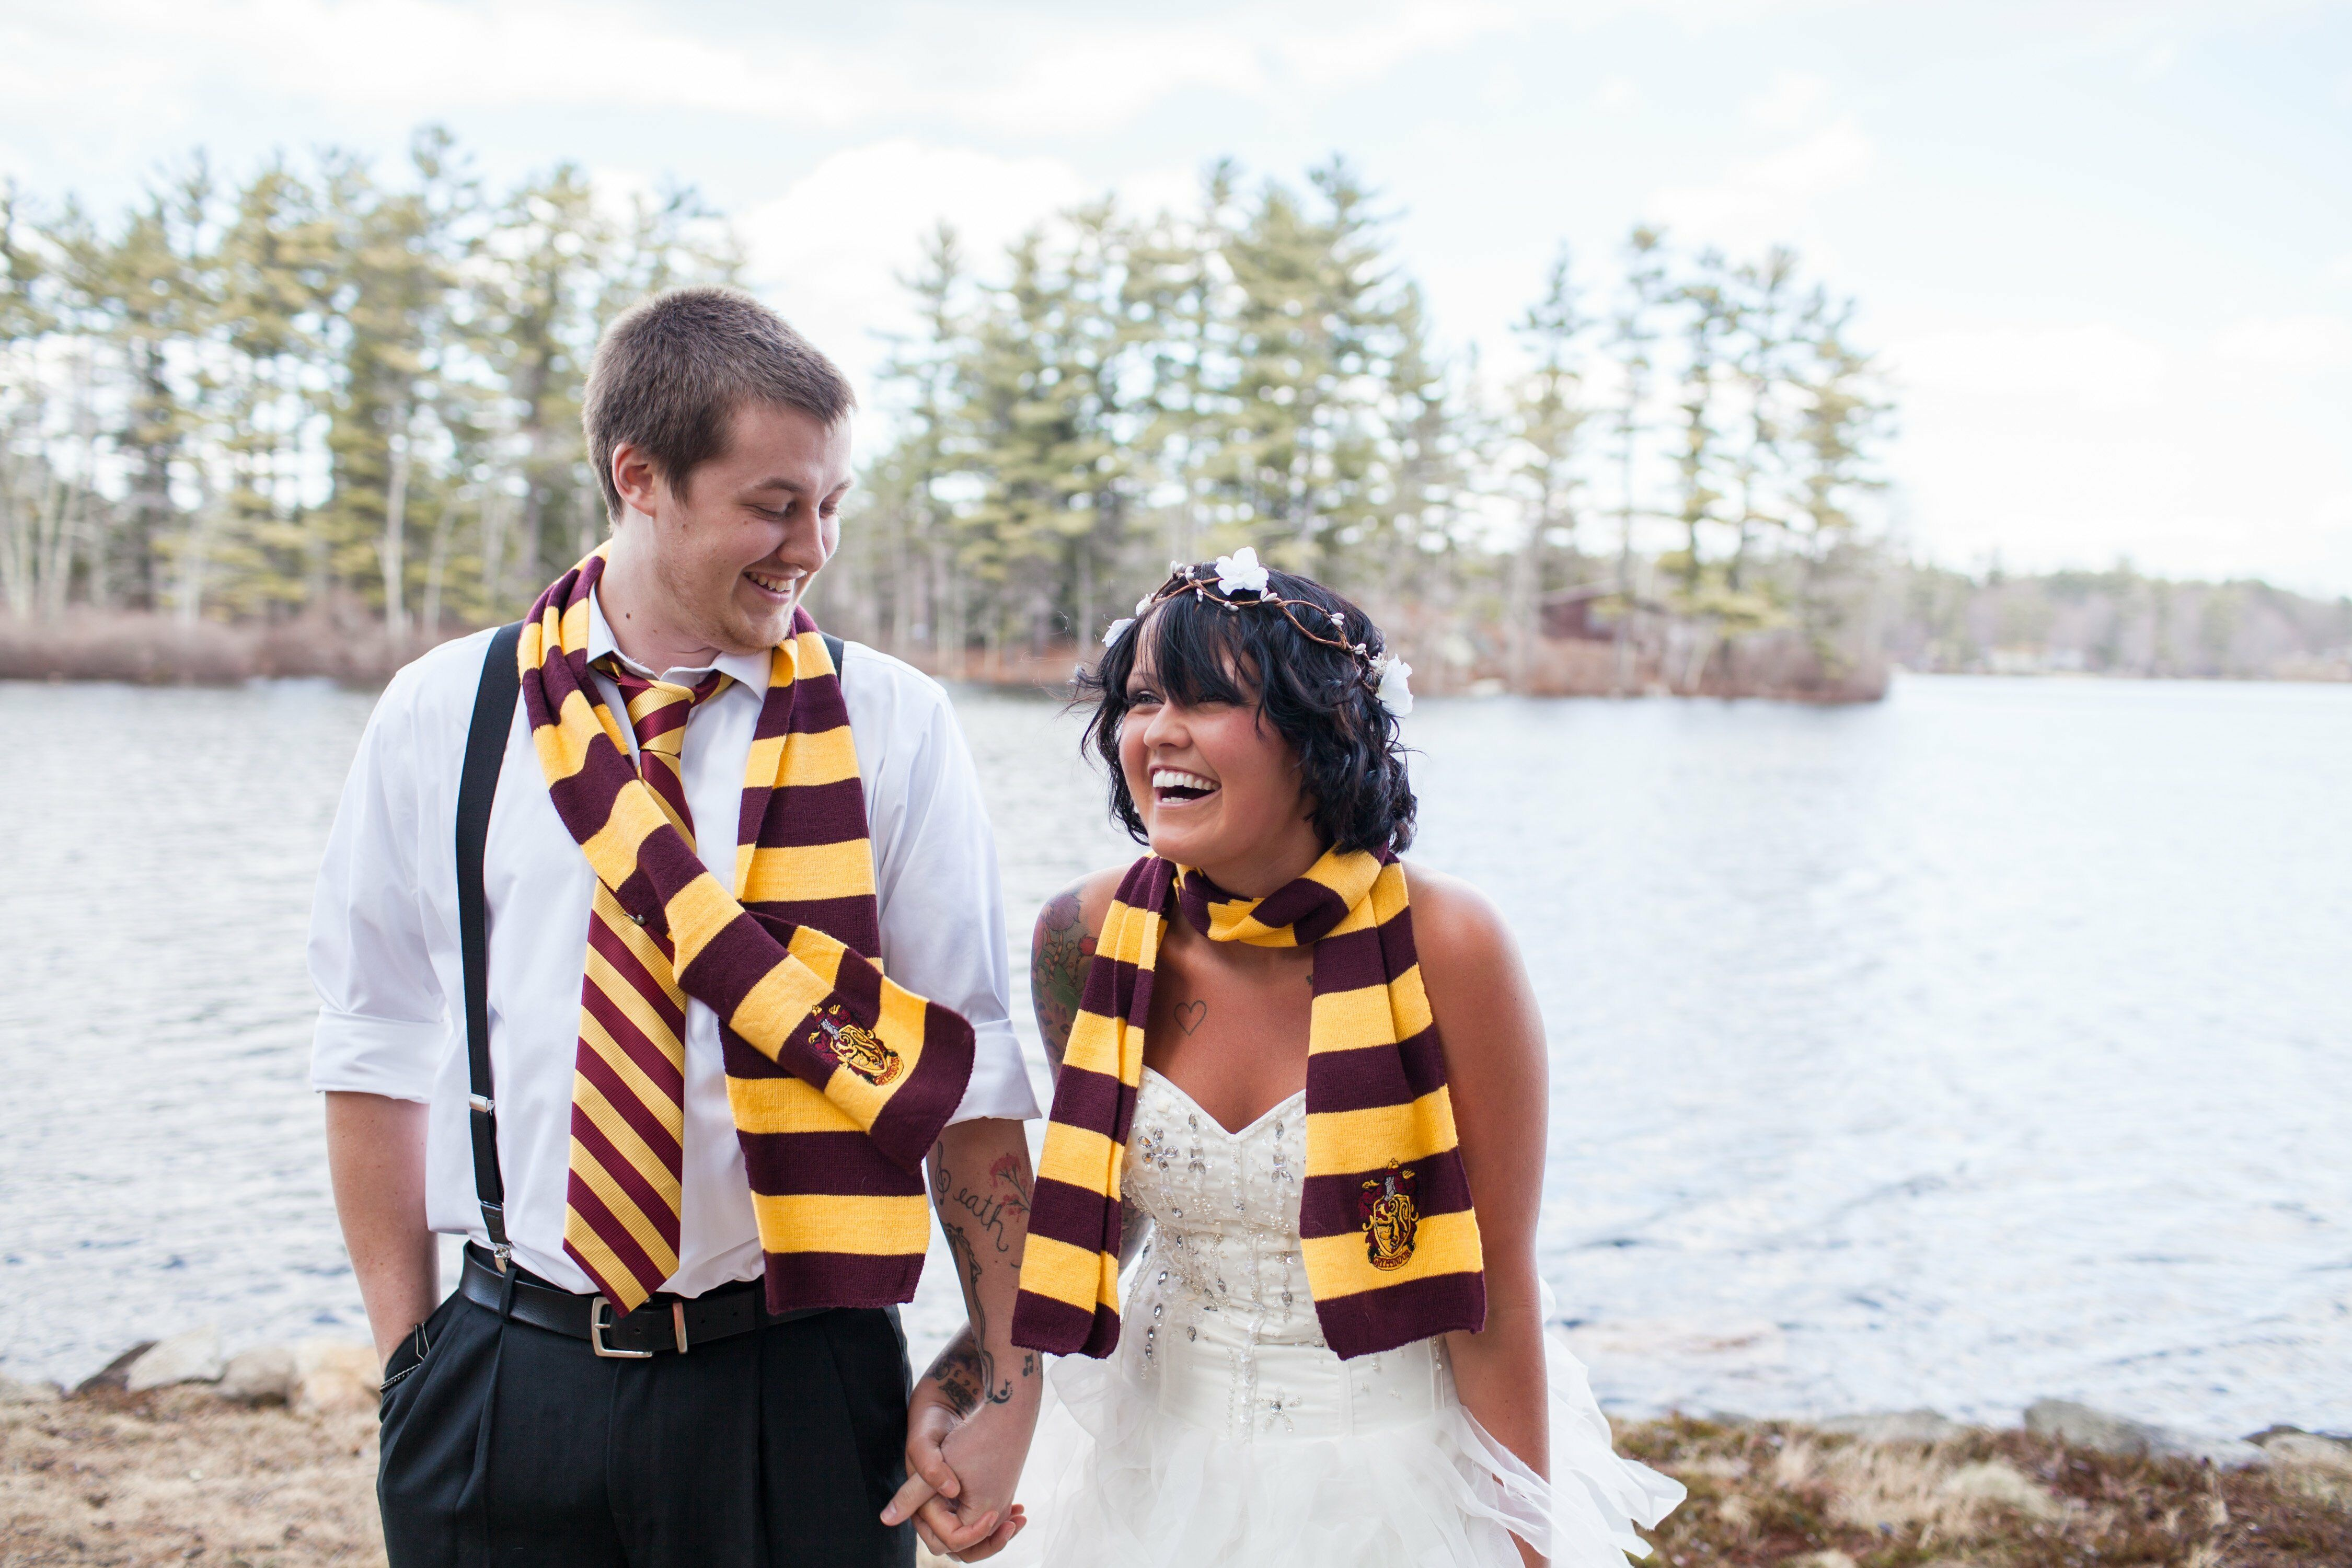 Harry Potter Themed Wedding In New Hampshire